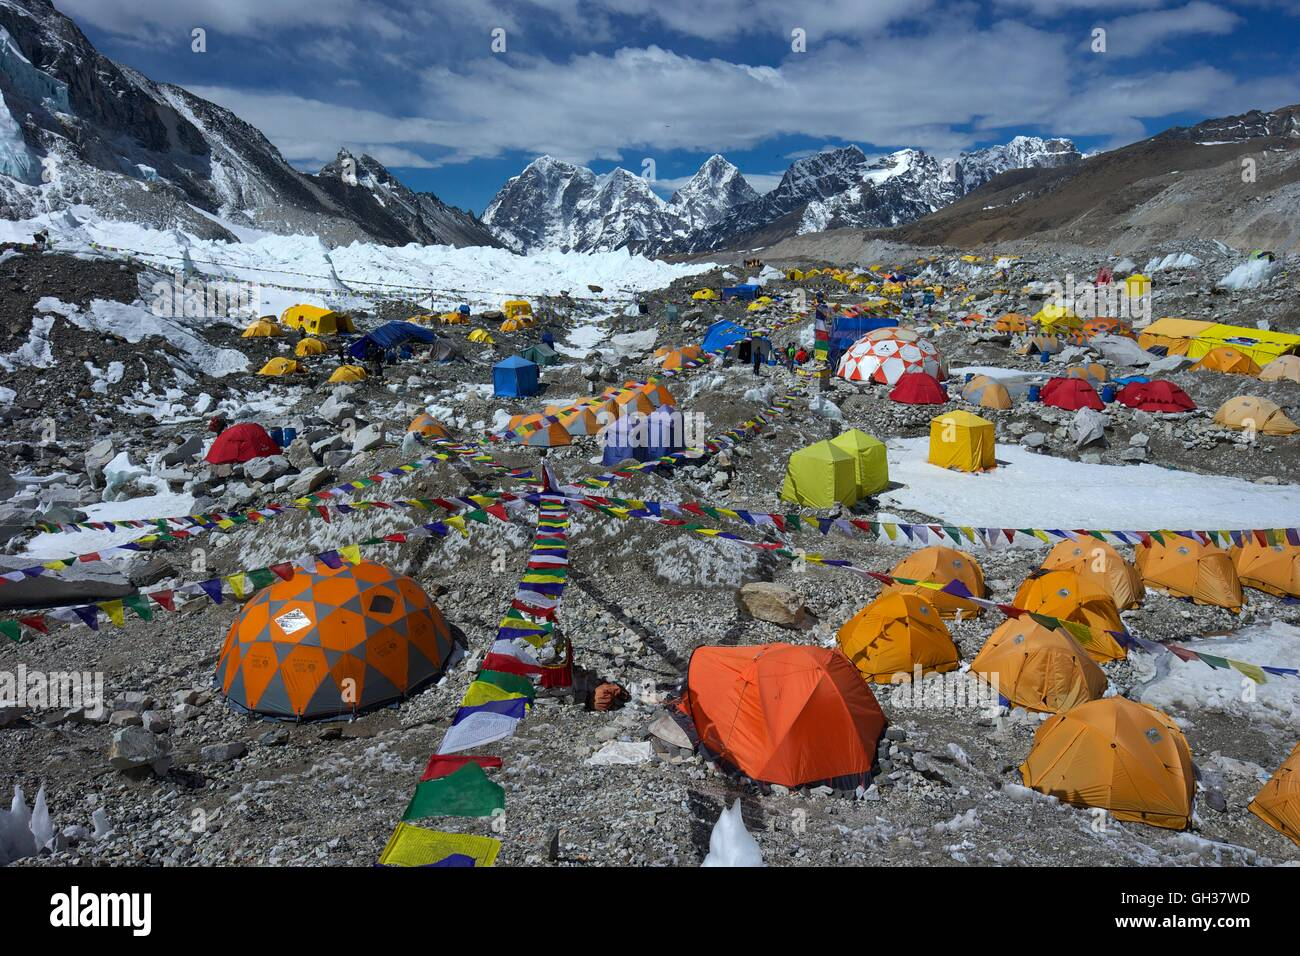 Looking south across Khumbu glacier from Everest Base Camp, Sagarmatha National Park, Solukhumbu District, Nepal, - Stock Image